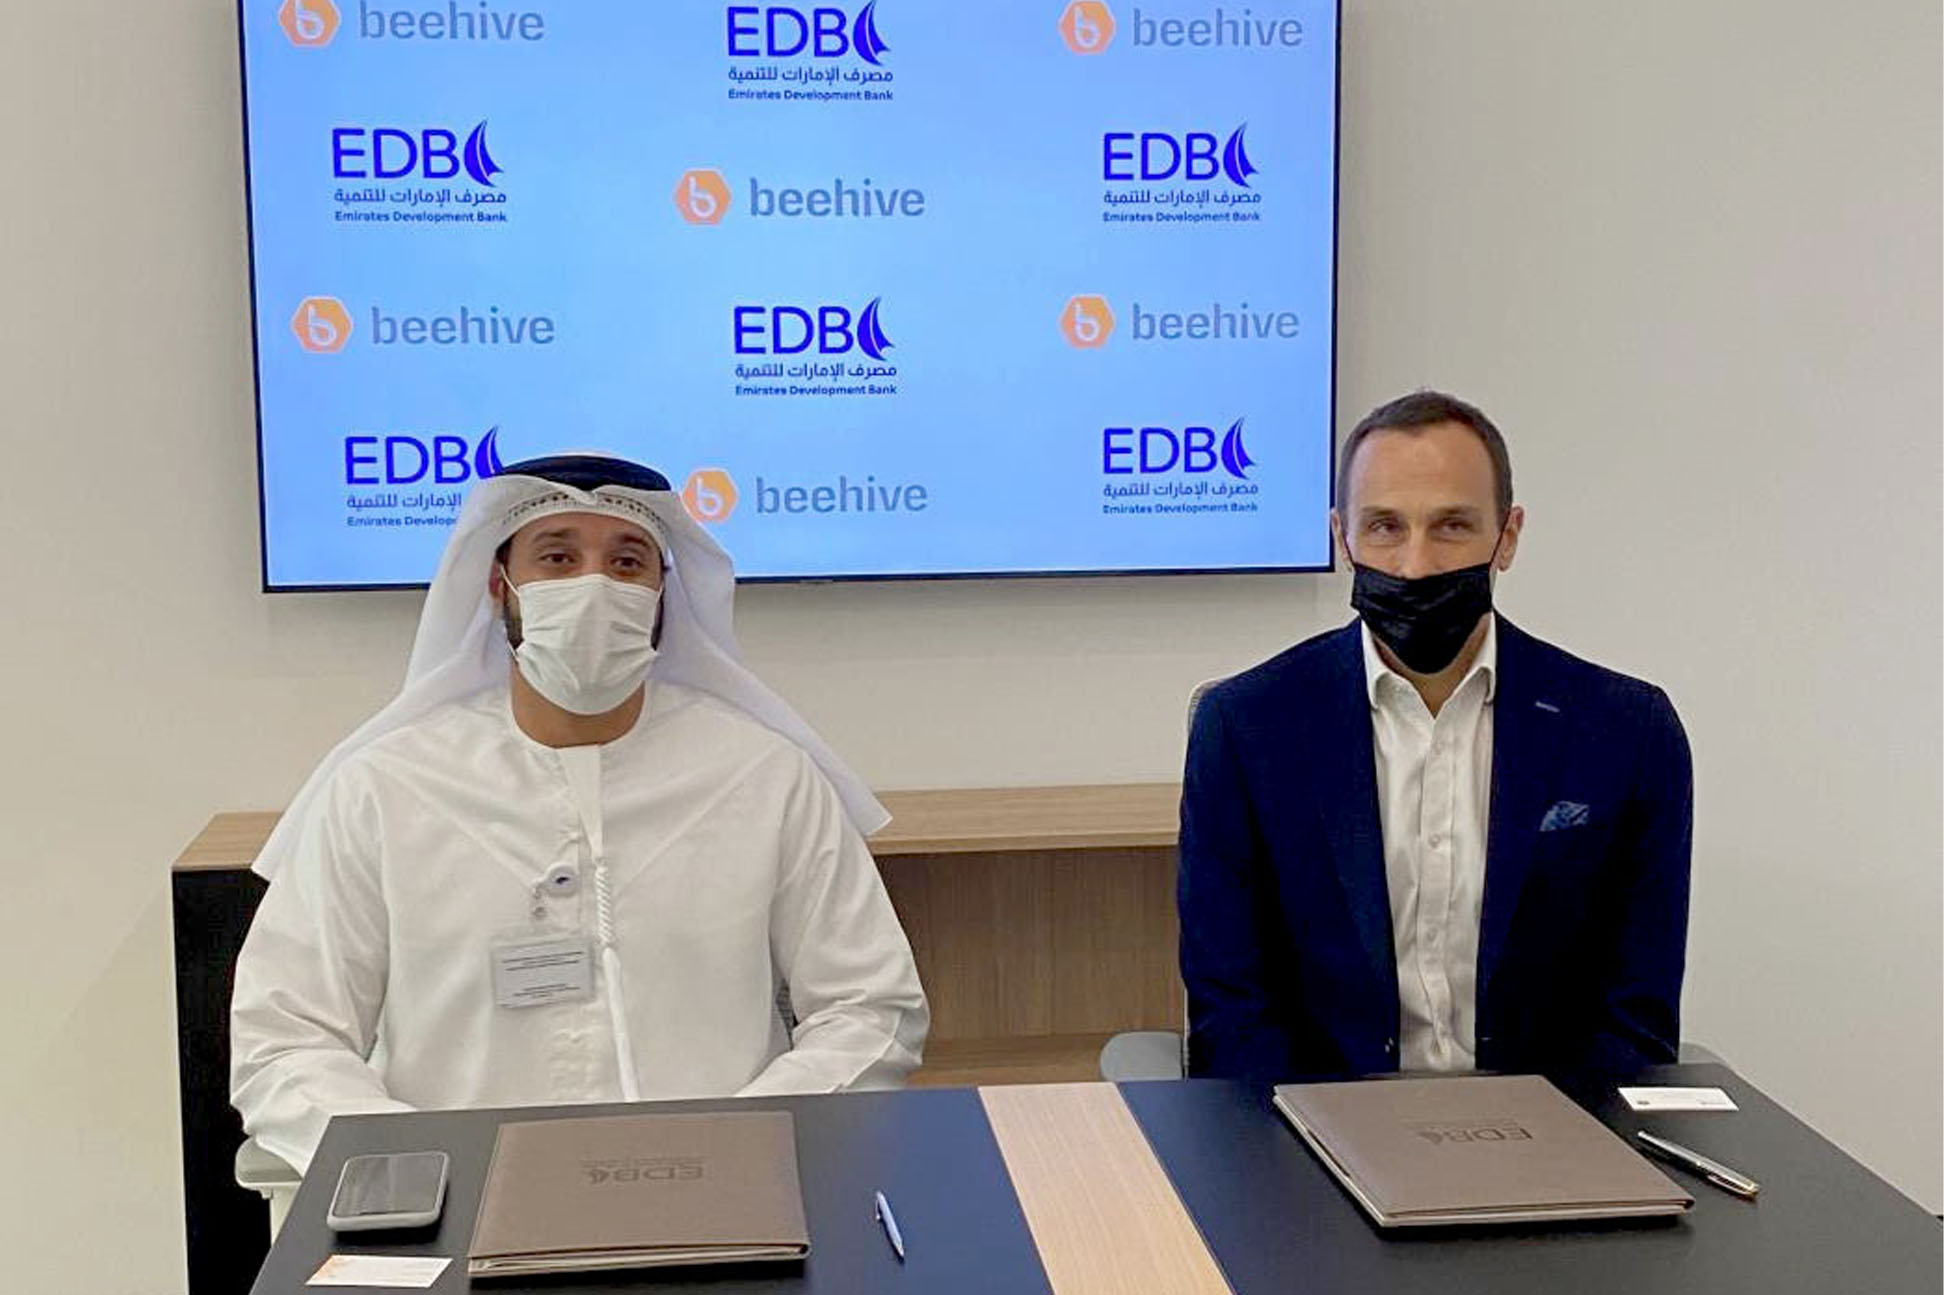 EDB expands funding options for SMEs with Beehive agreement